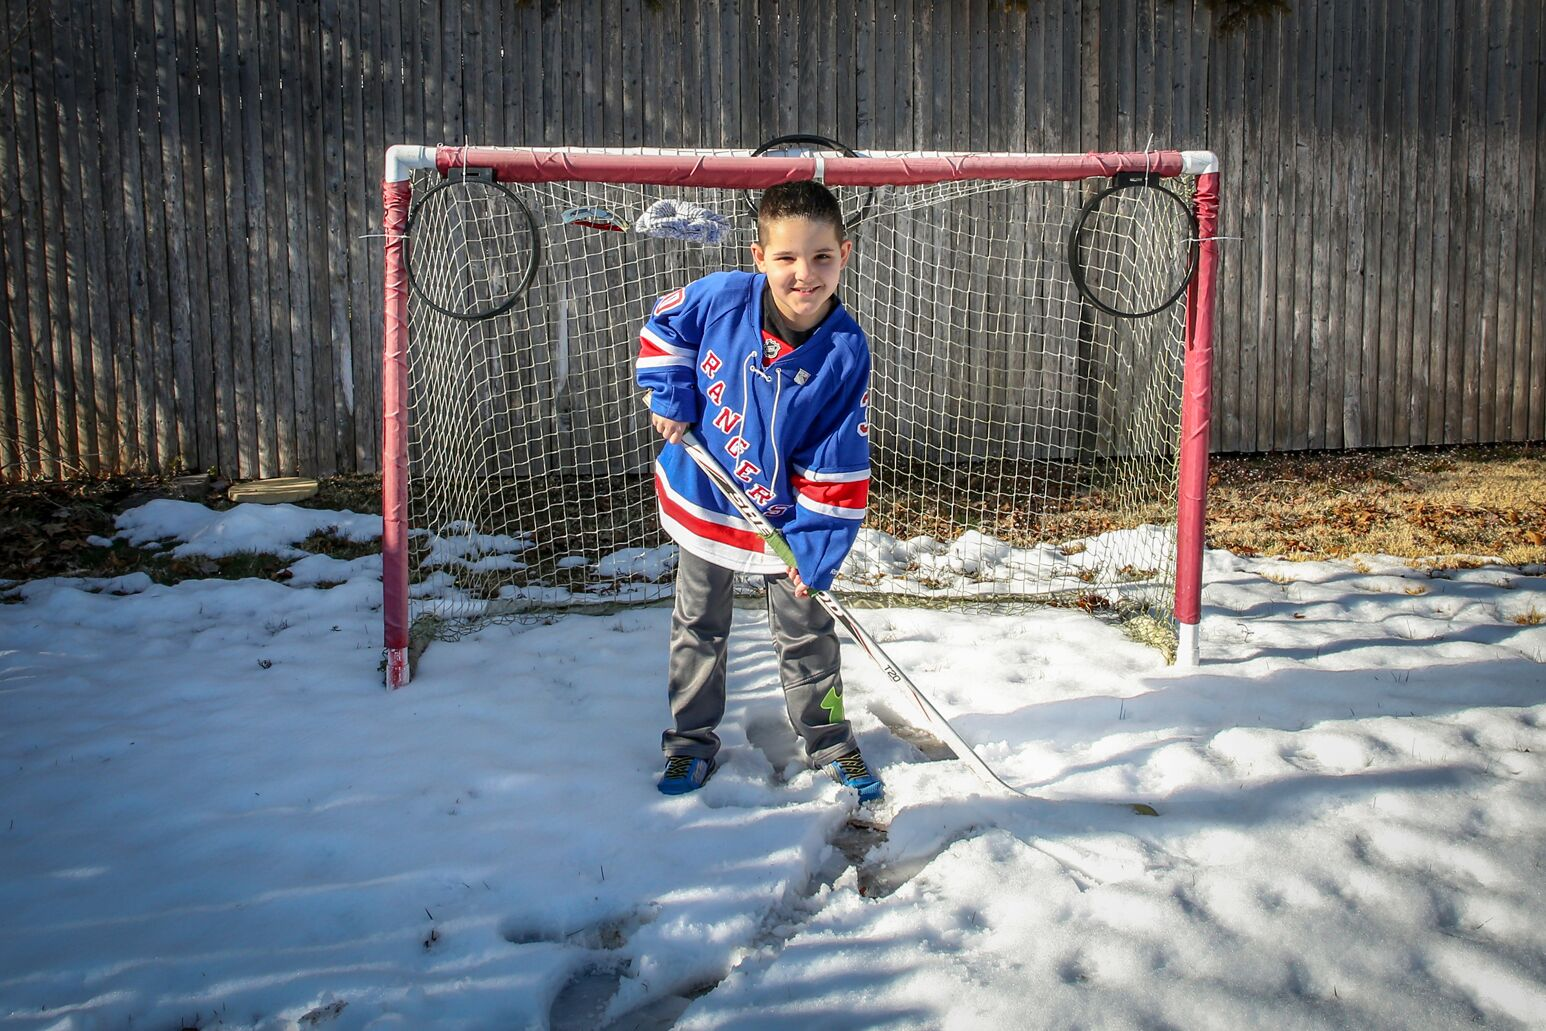 John Higgins wearing a Rangers jersey and playing hockey in the snow.